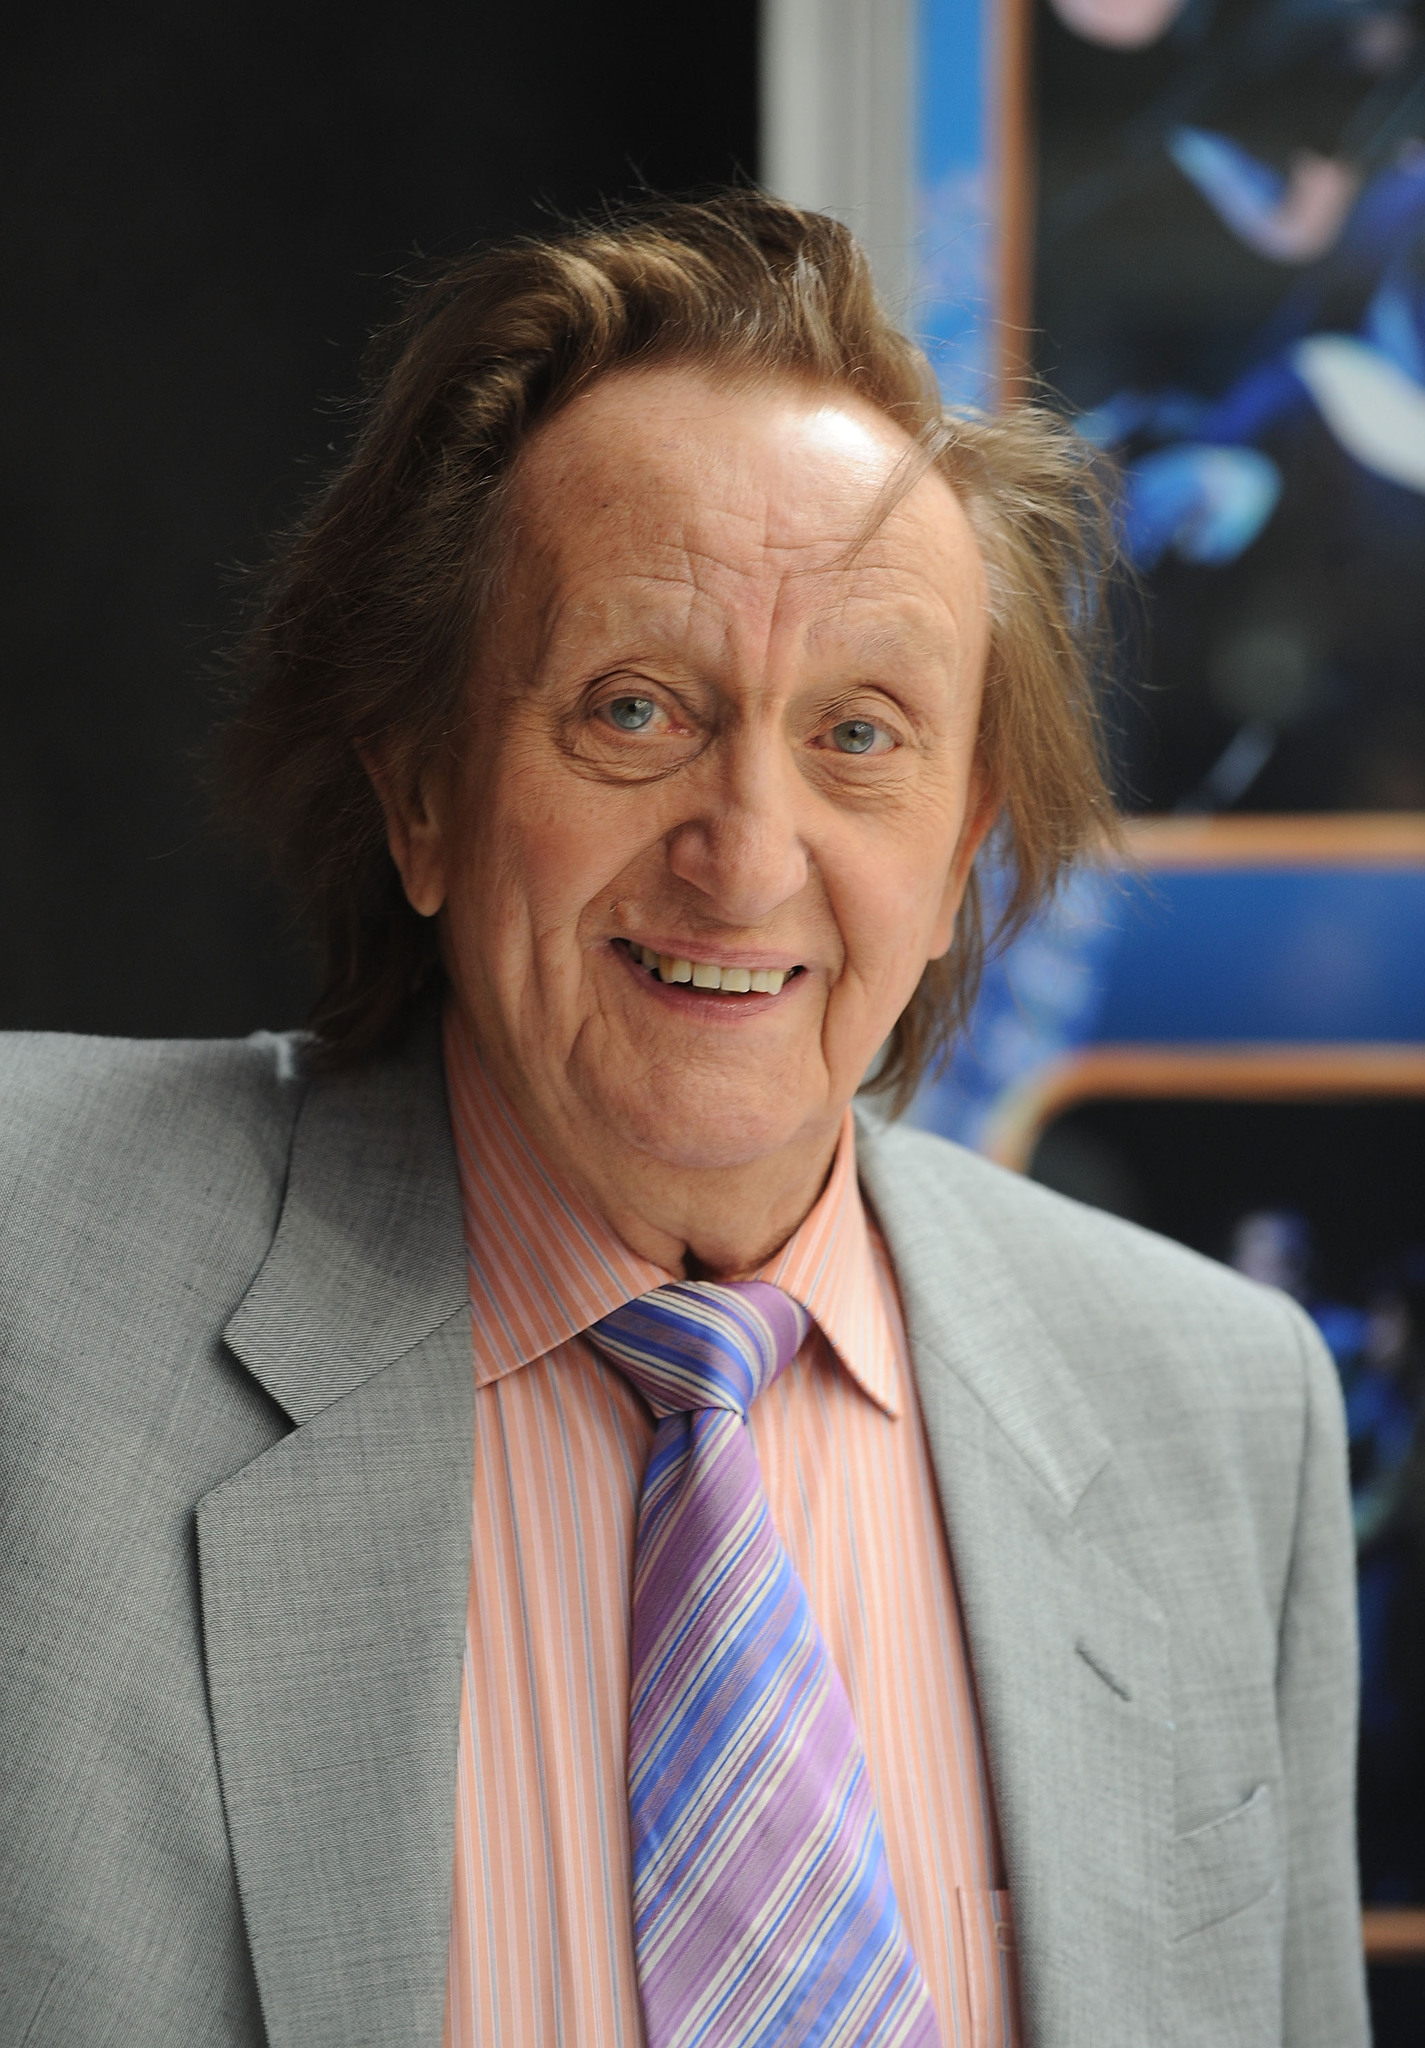 Ken Dodd's primary photo